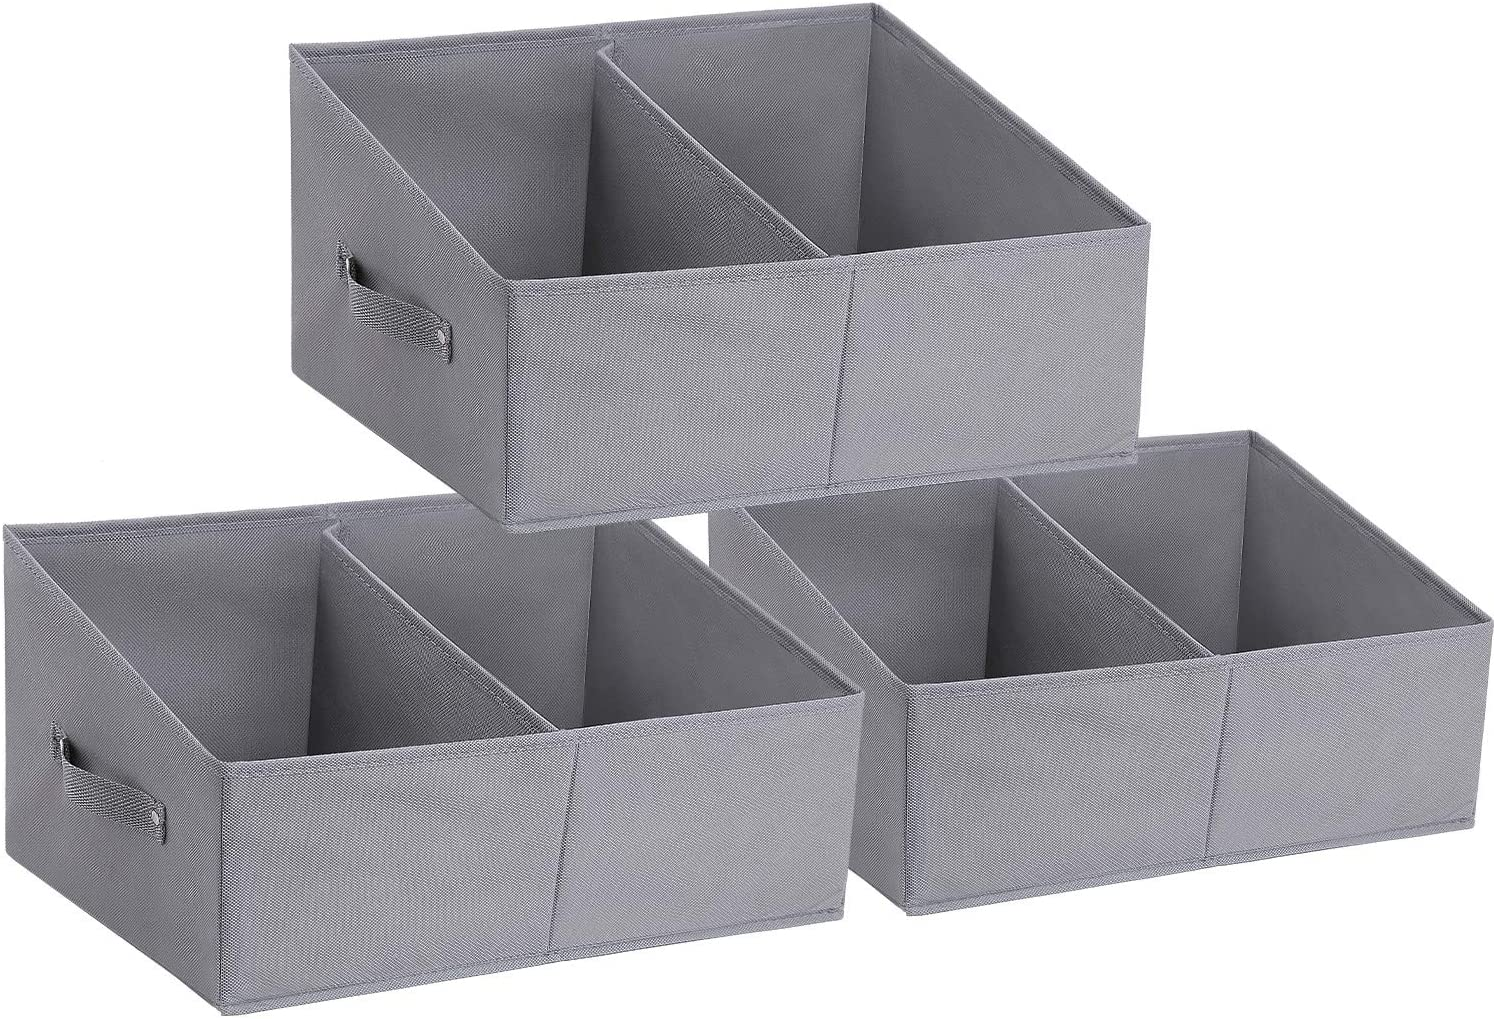 DIMJ 3 Pack Storage Box with Compartment, Foldable with Reinforced Handles WAS £14.99 NOW £7.49 with single use codes @ Amazon